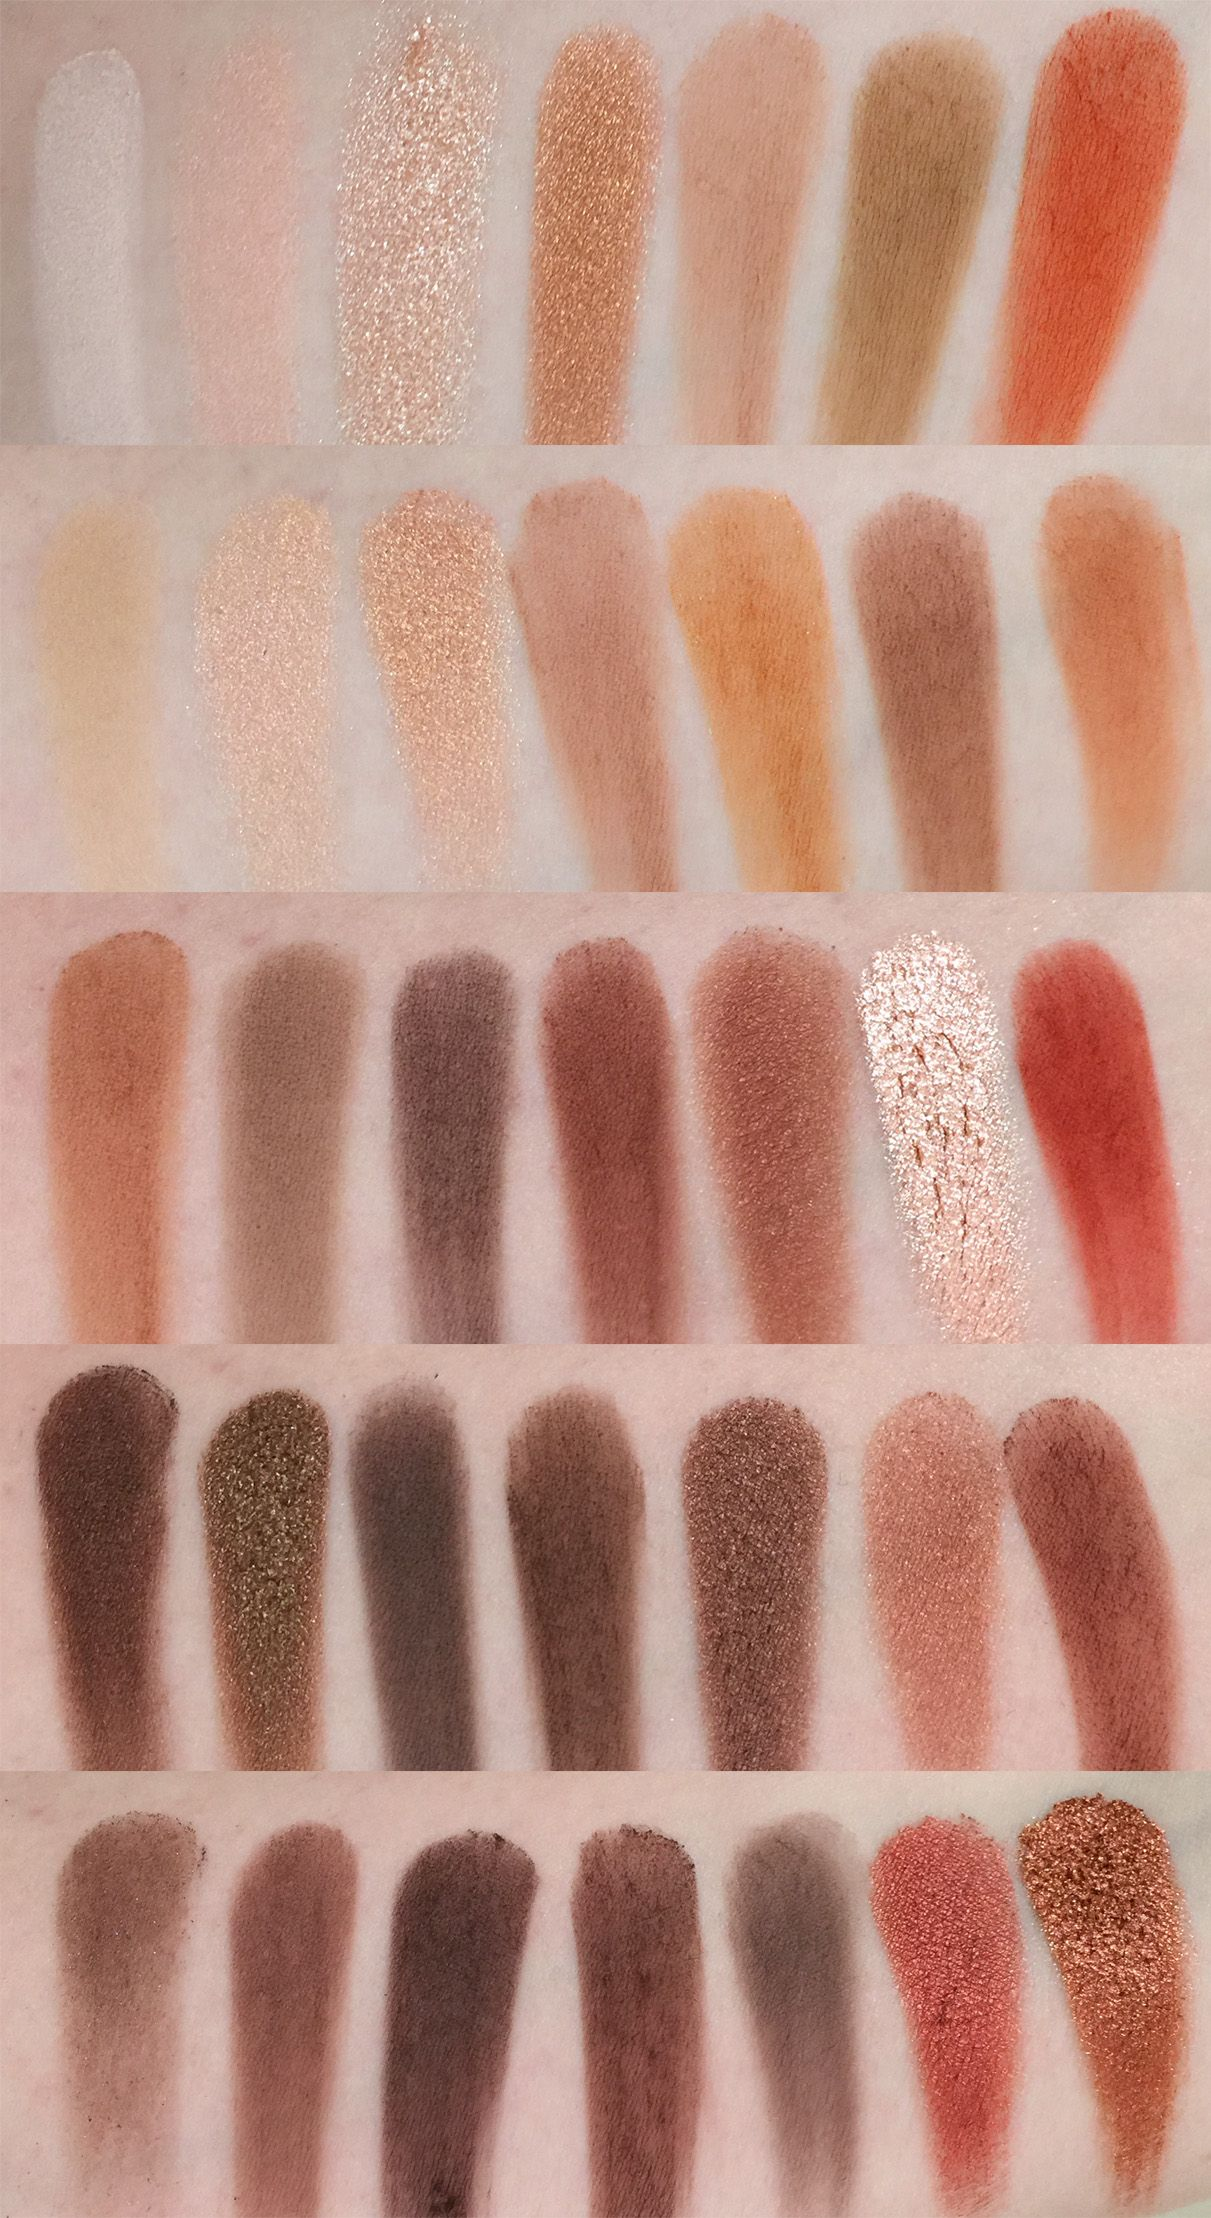 Nature Glow Artistry Palette - 35O by Morphe #8